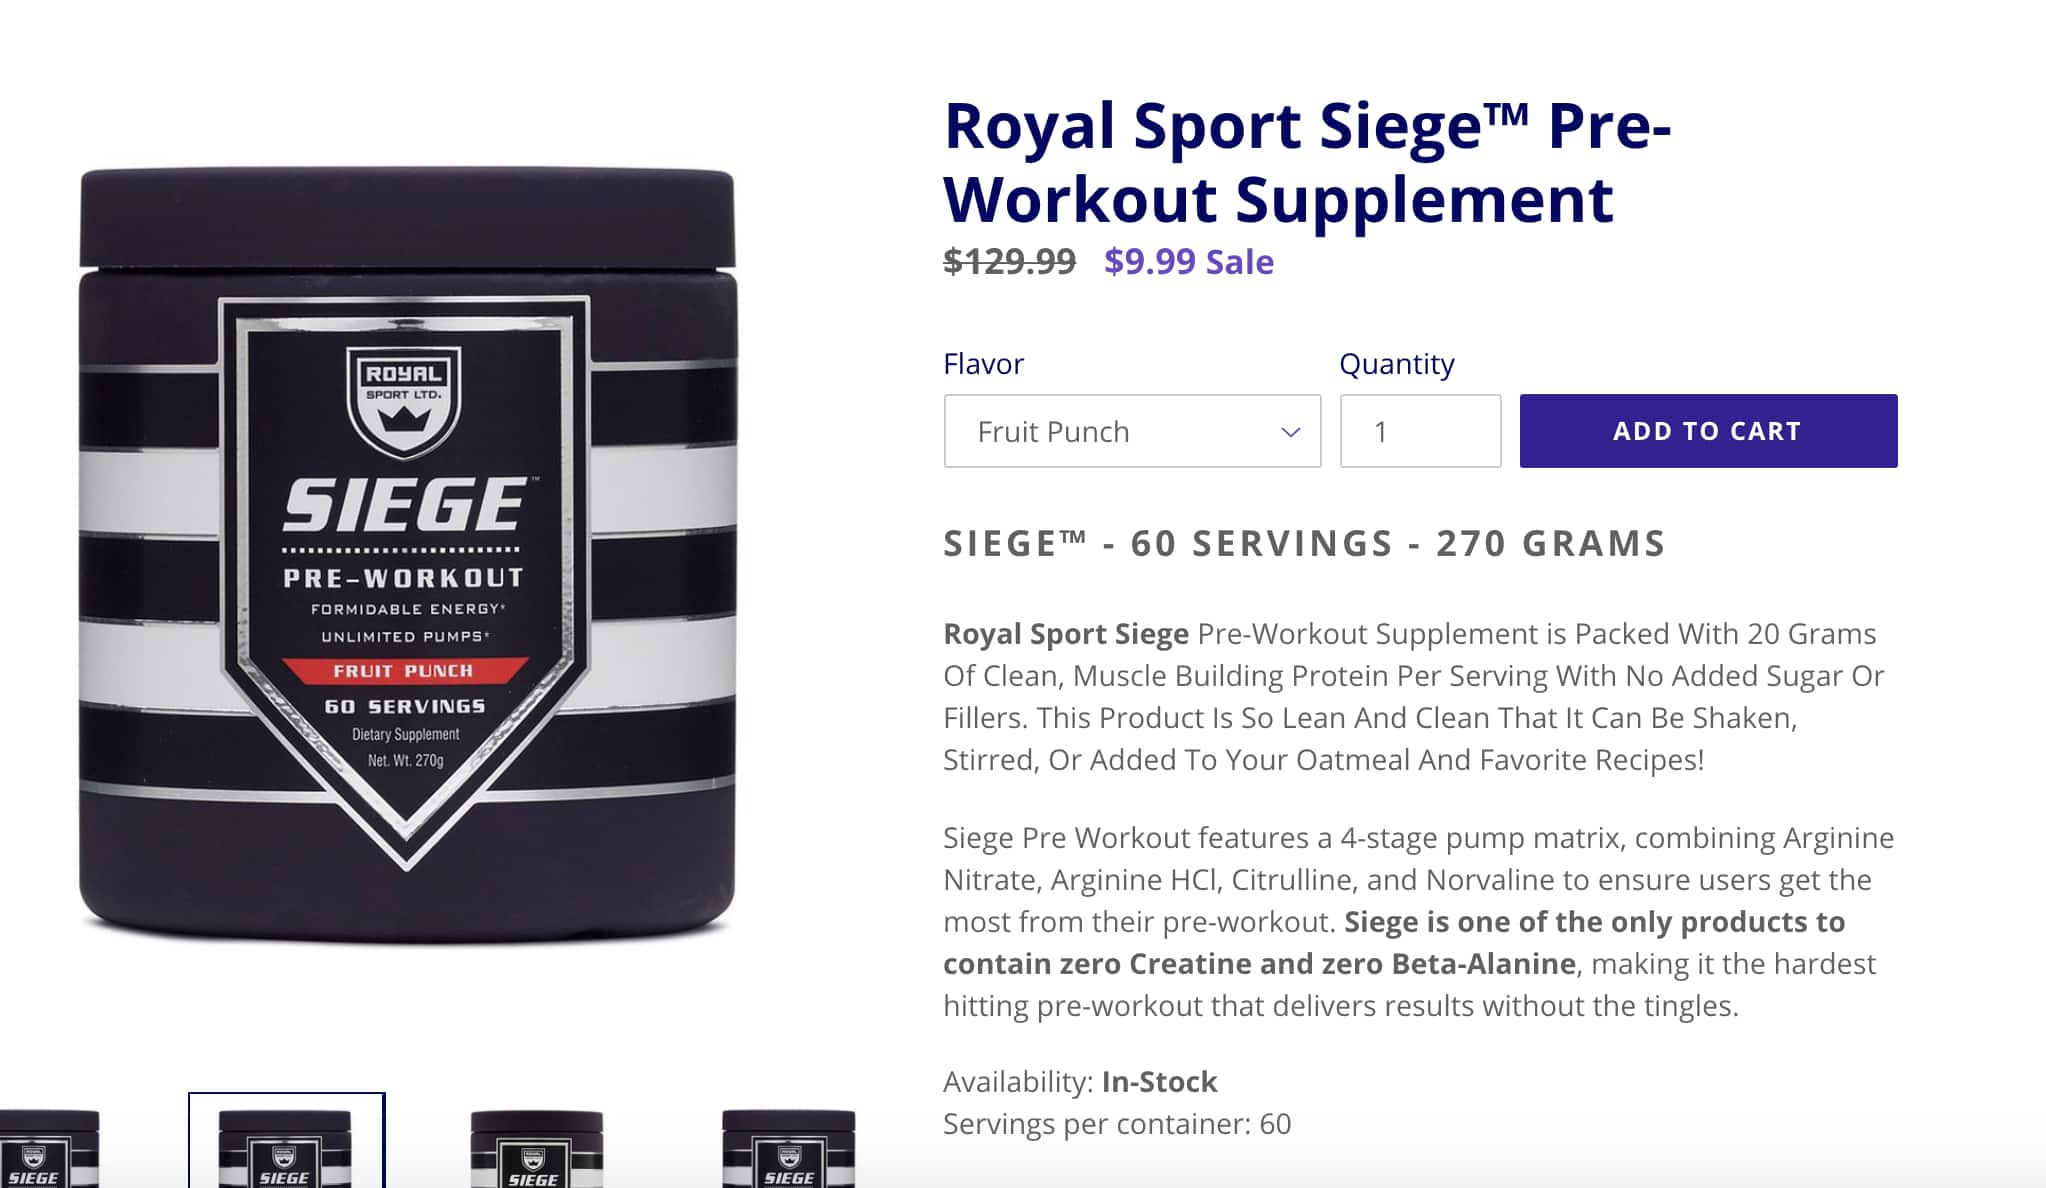 Royal Sport Siege™ Pre-Workout Supplement - $9.99 + Free Shipping